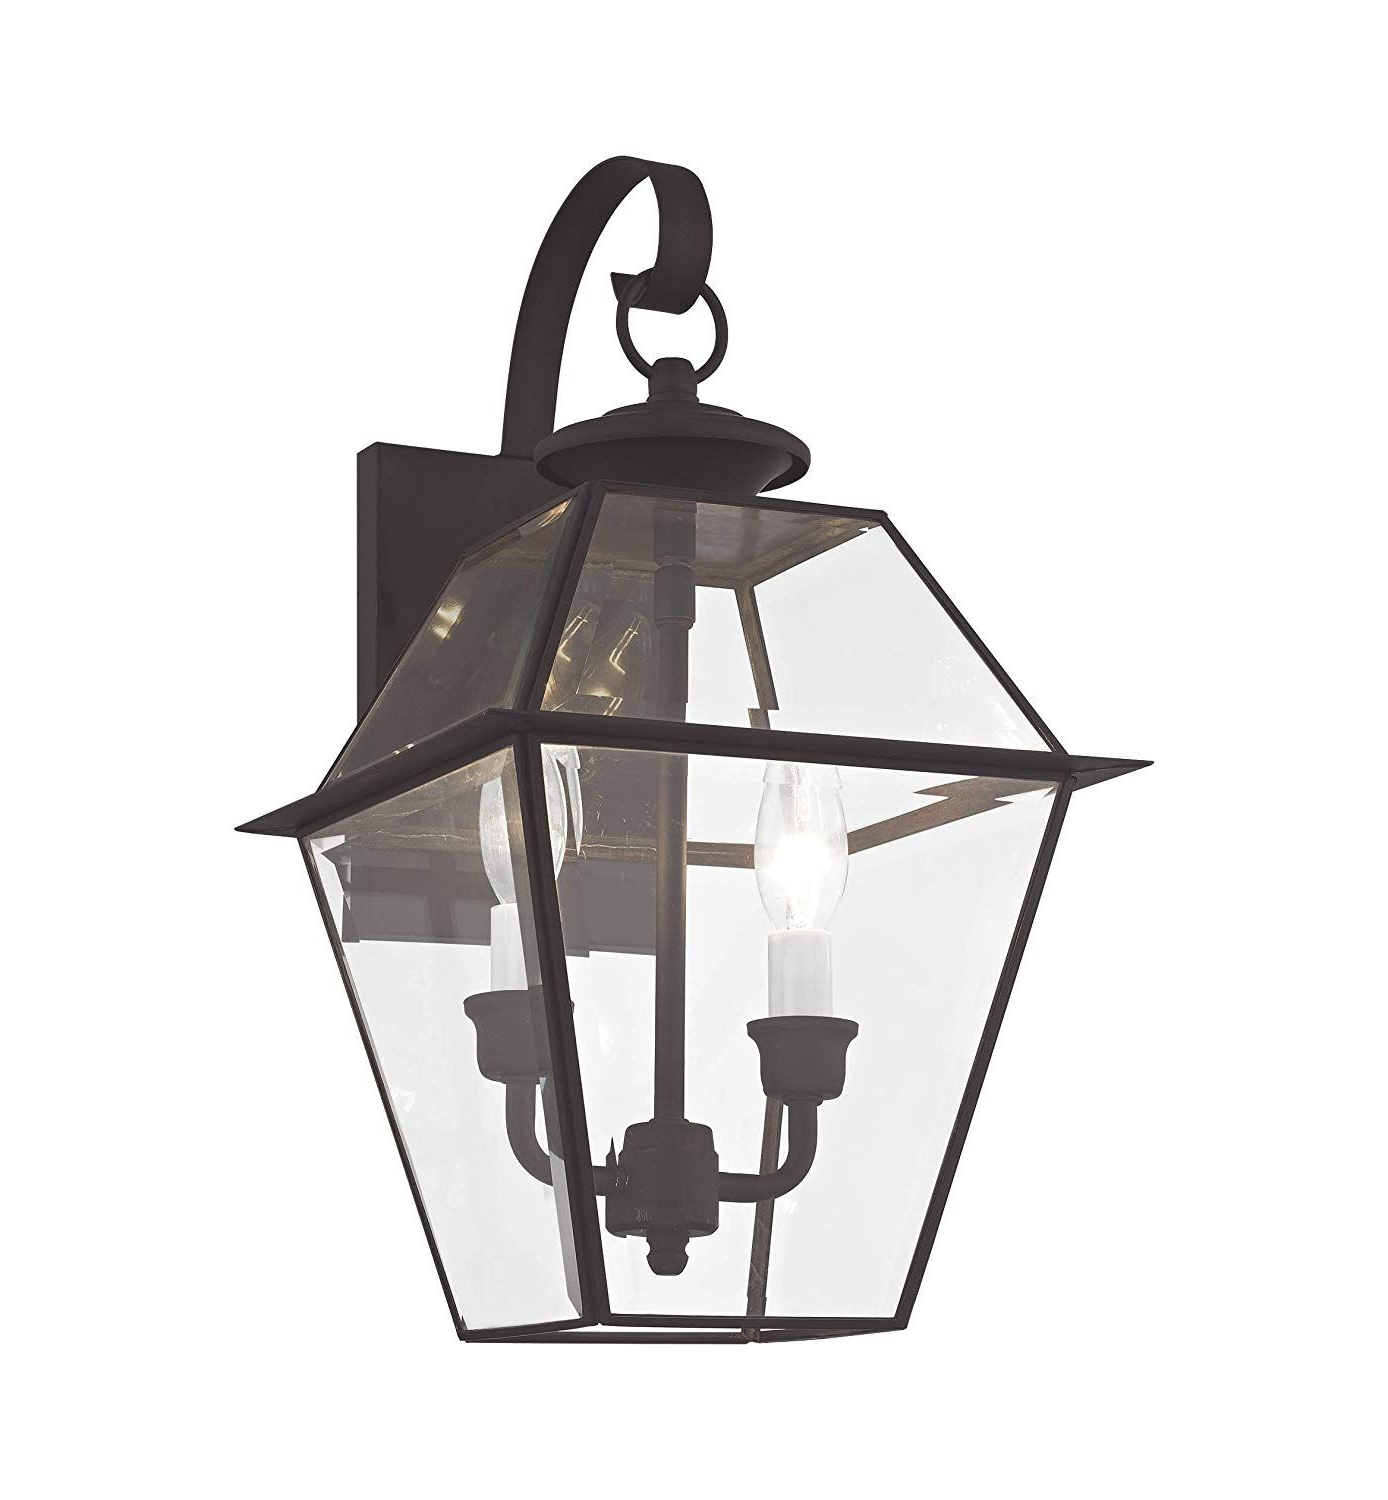 Best And Newest Livex Lighting 2281 04 Westover 2 Light Outdoor Black Throughout Gillian Beveled Glass Outdoor Wall Lanterns (View 1 of 15)